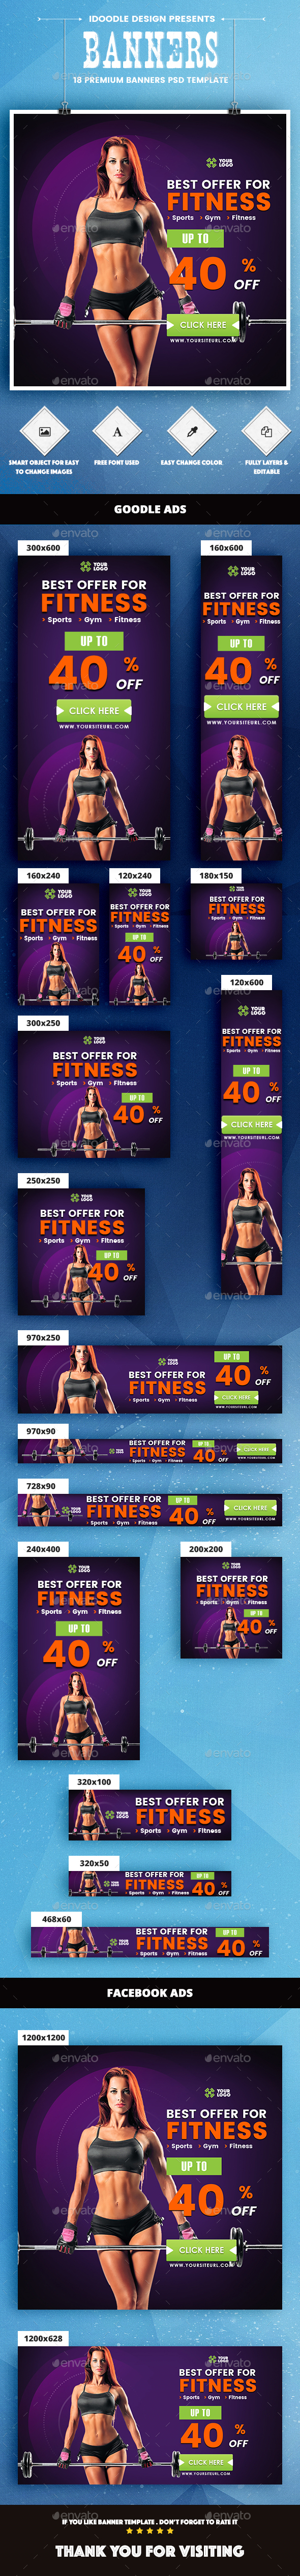 Health & Fitness Banners Ads - Banners & Ads Web Elements